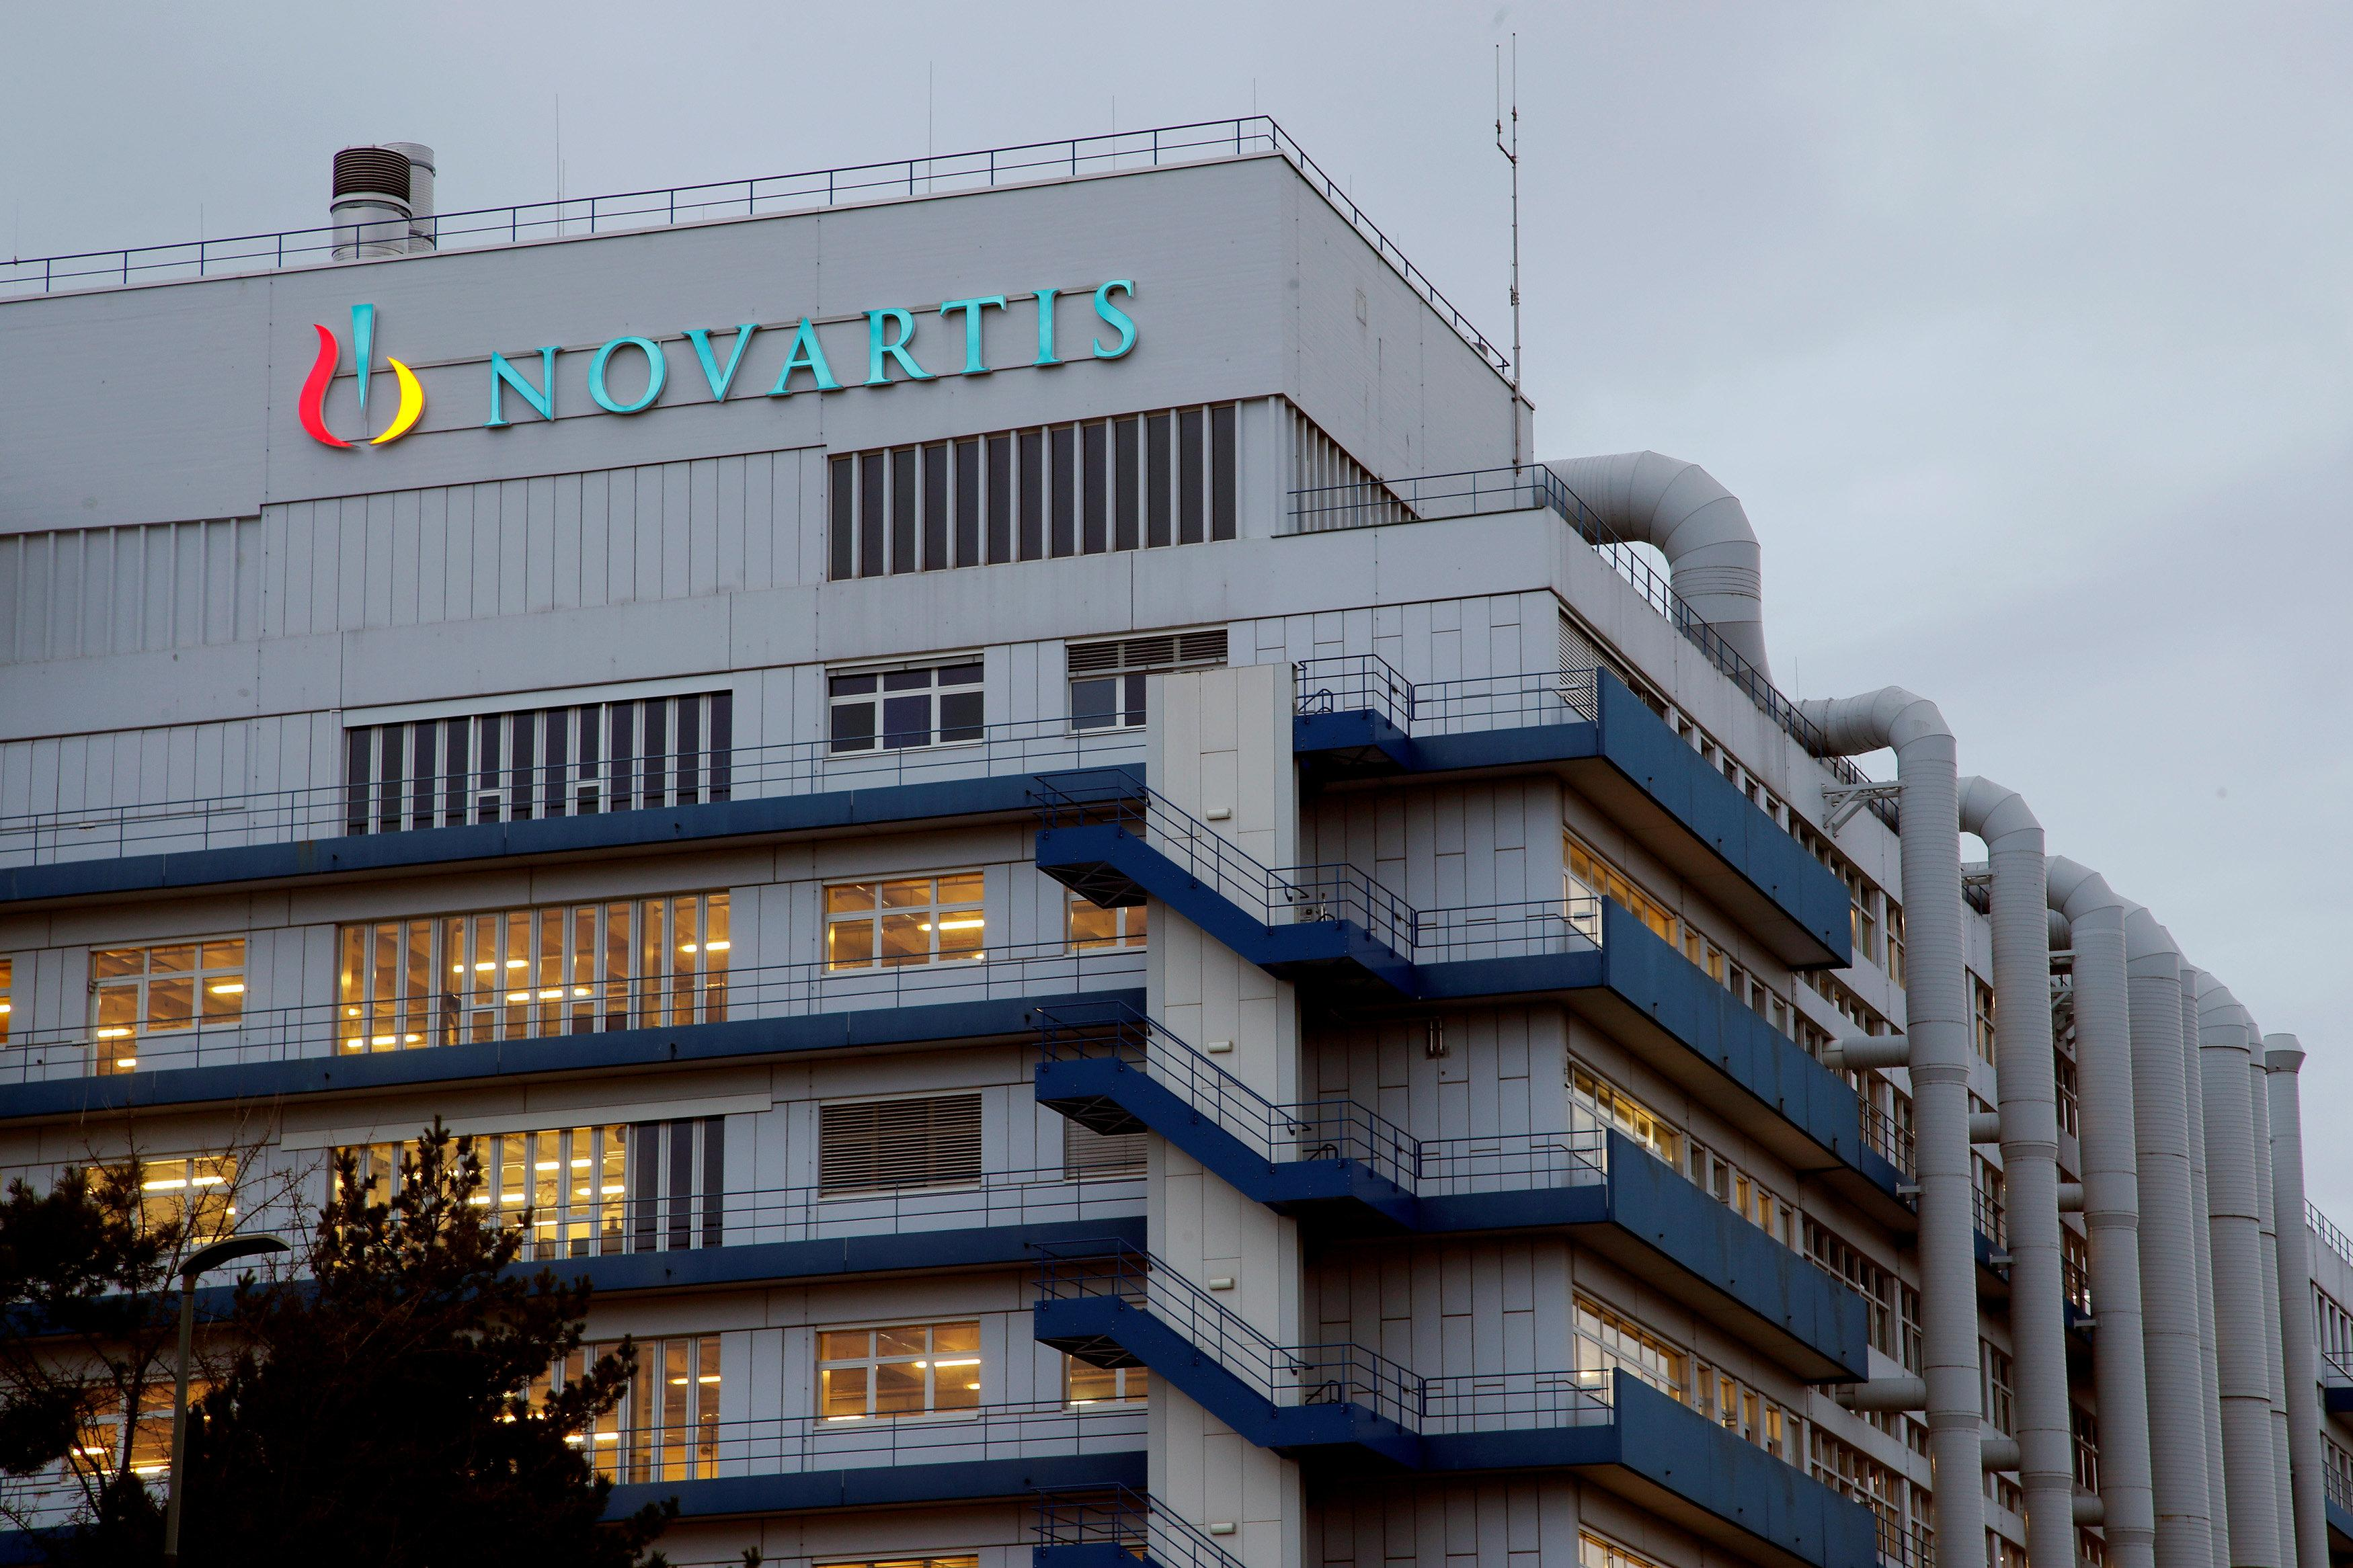 Logo of Swiss drugmaker Novartis is seen at its branch in Schweizerhalle near Basel, Switzerland, March 29, 2018. Arnd Wiegmann